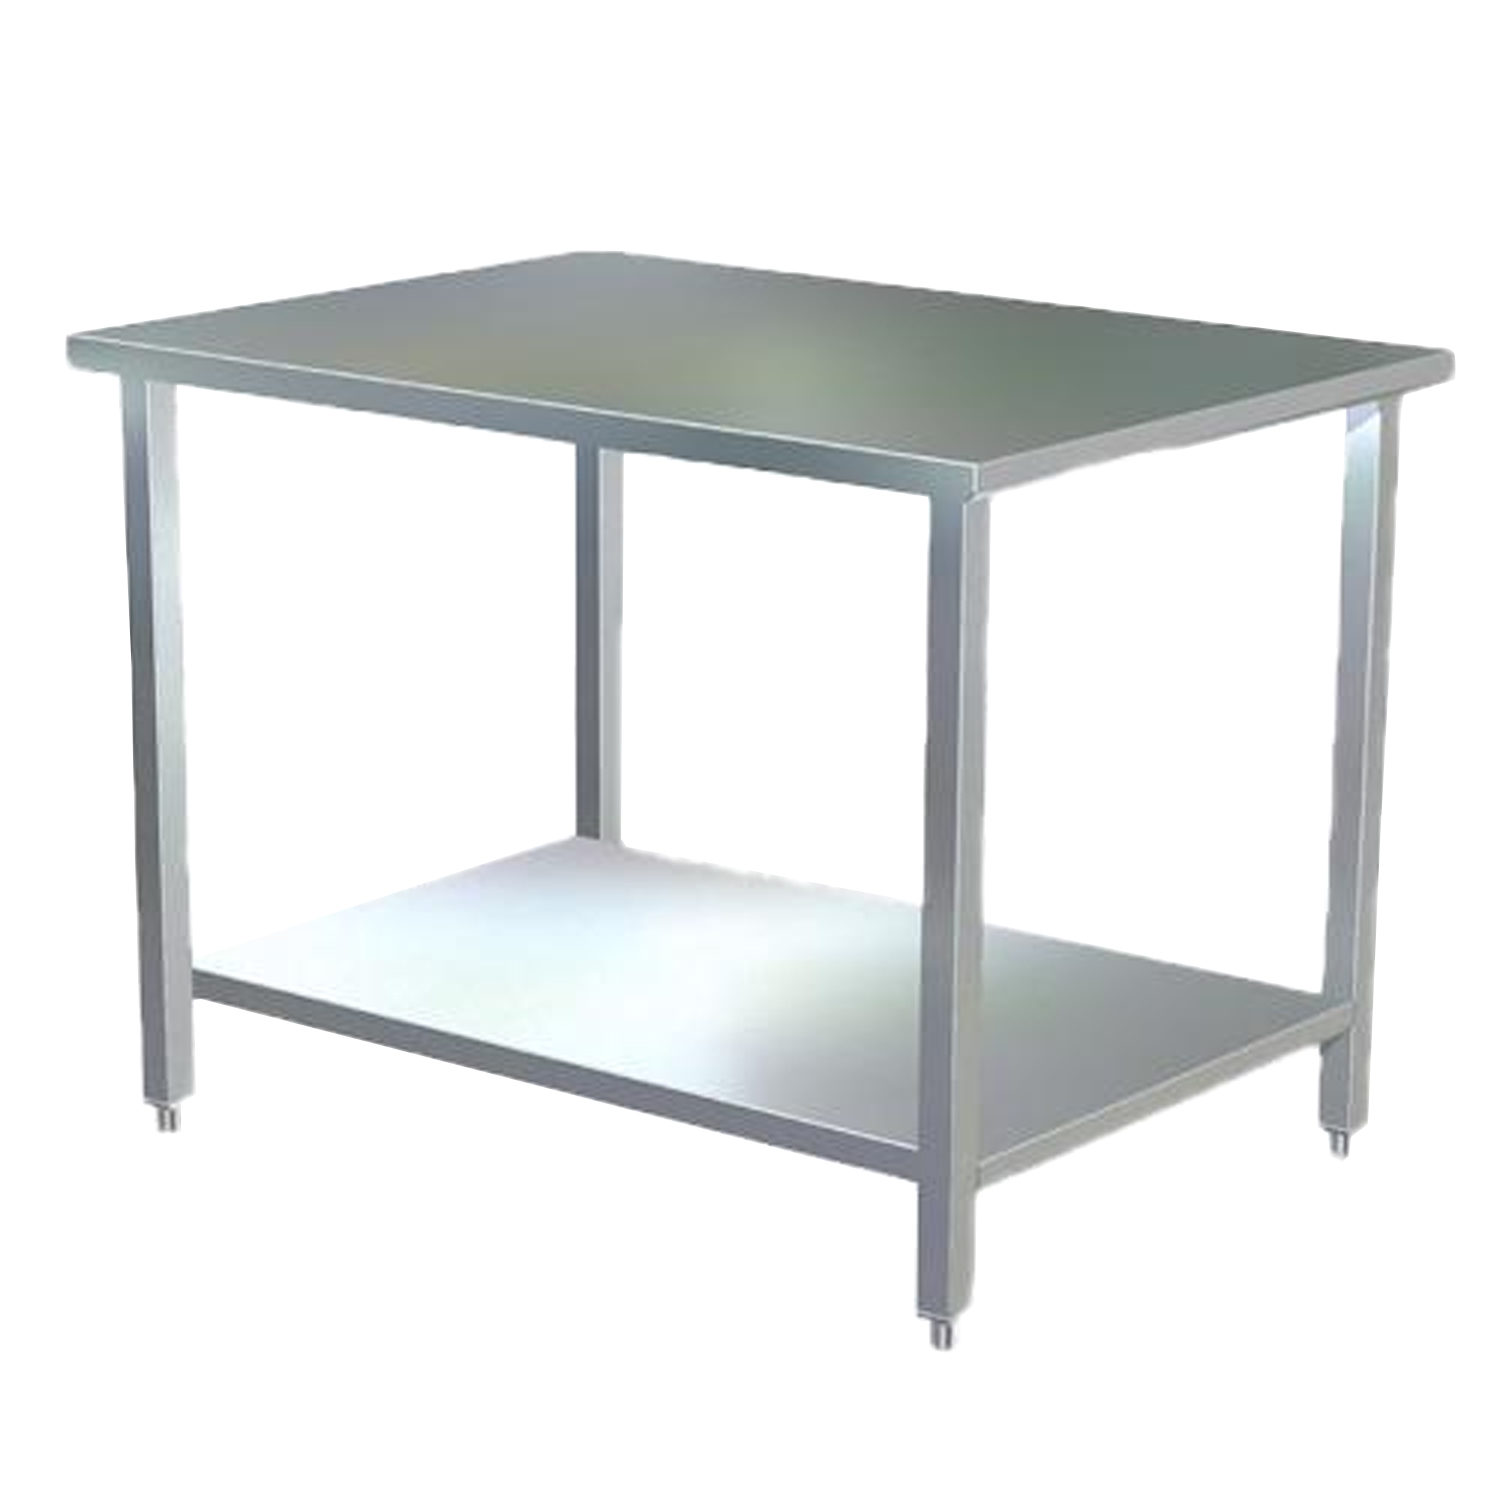 Avante Stainless Steel Grooming/Work Table